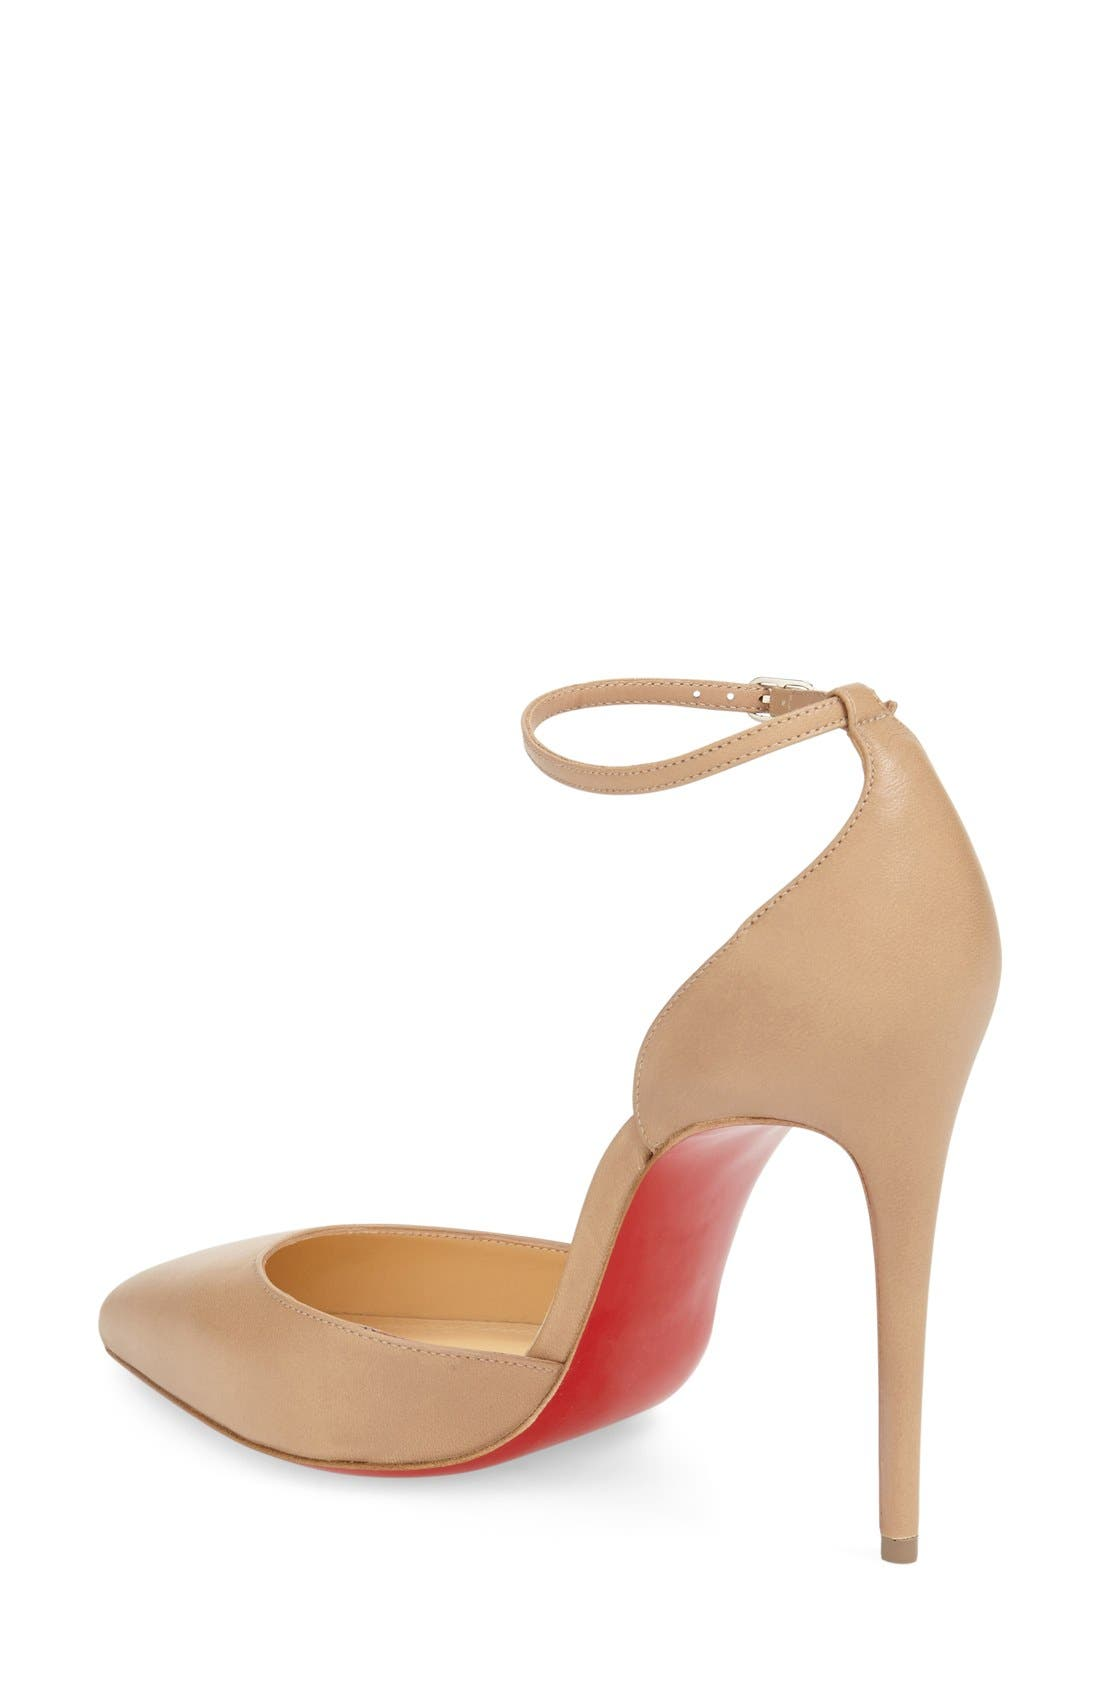 Uptown Ankle Strap Pointy Toe Pump,                             Alternate thumbnail 2, color,                             250